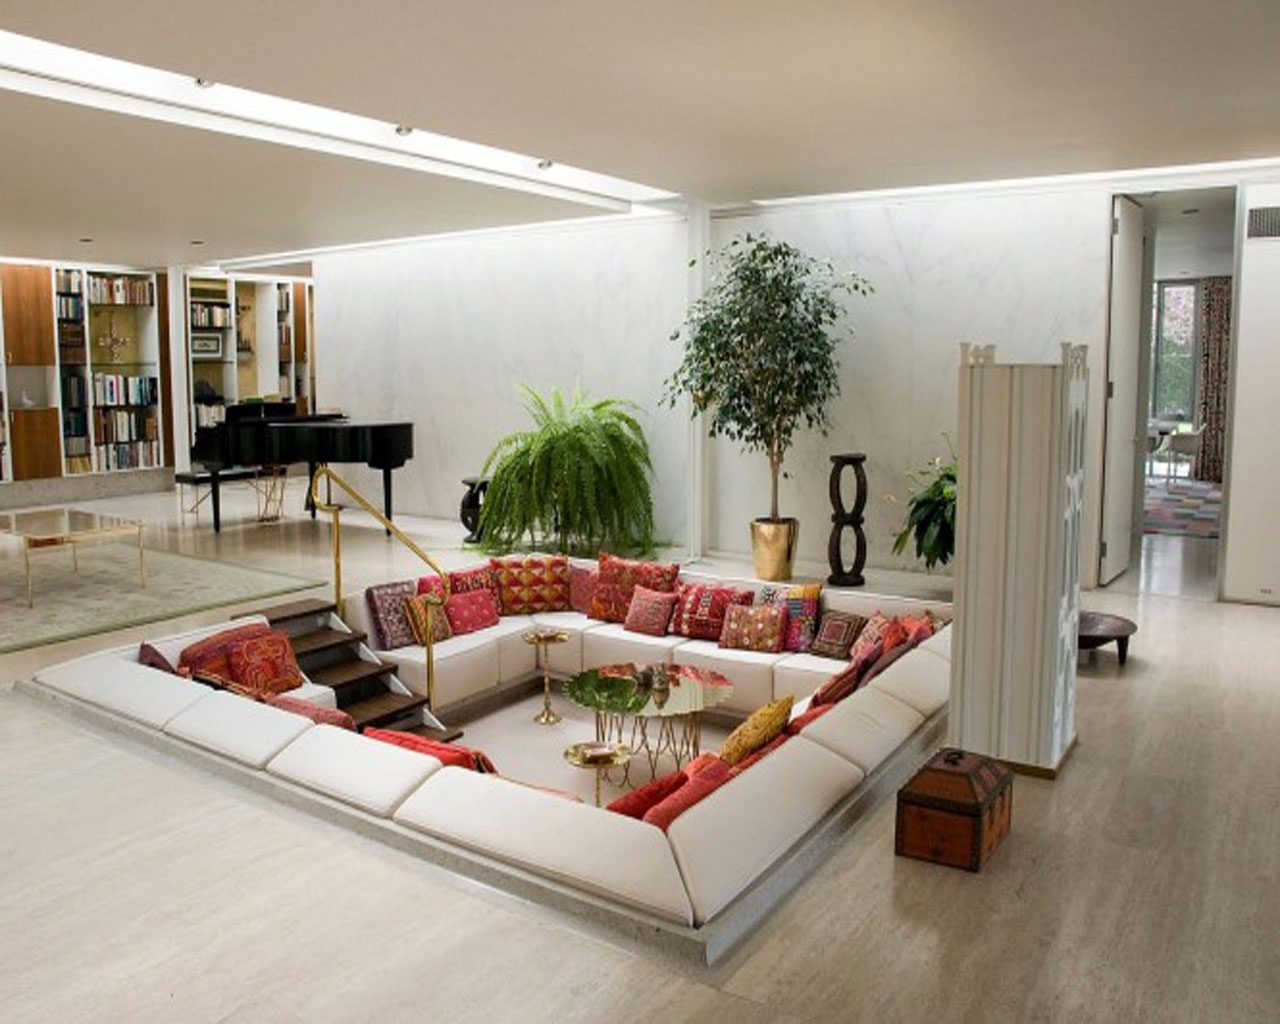 Cool living room ideas: easy and effective